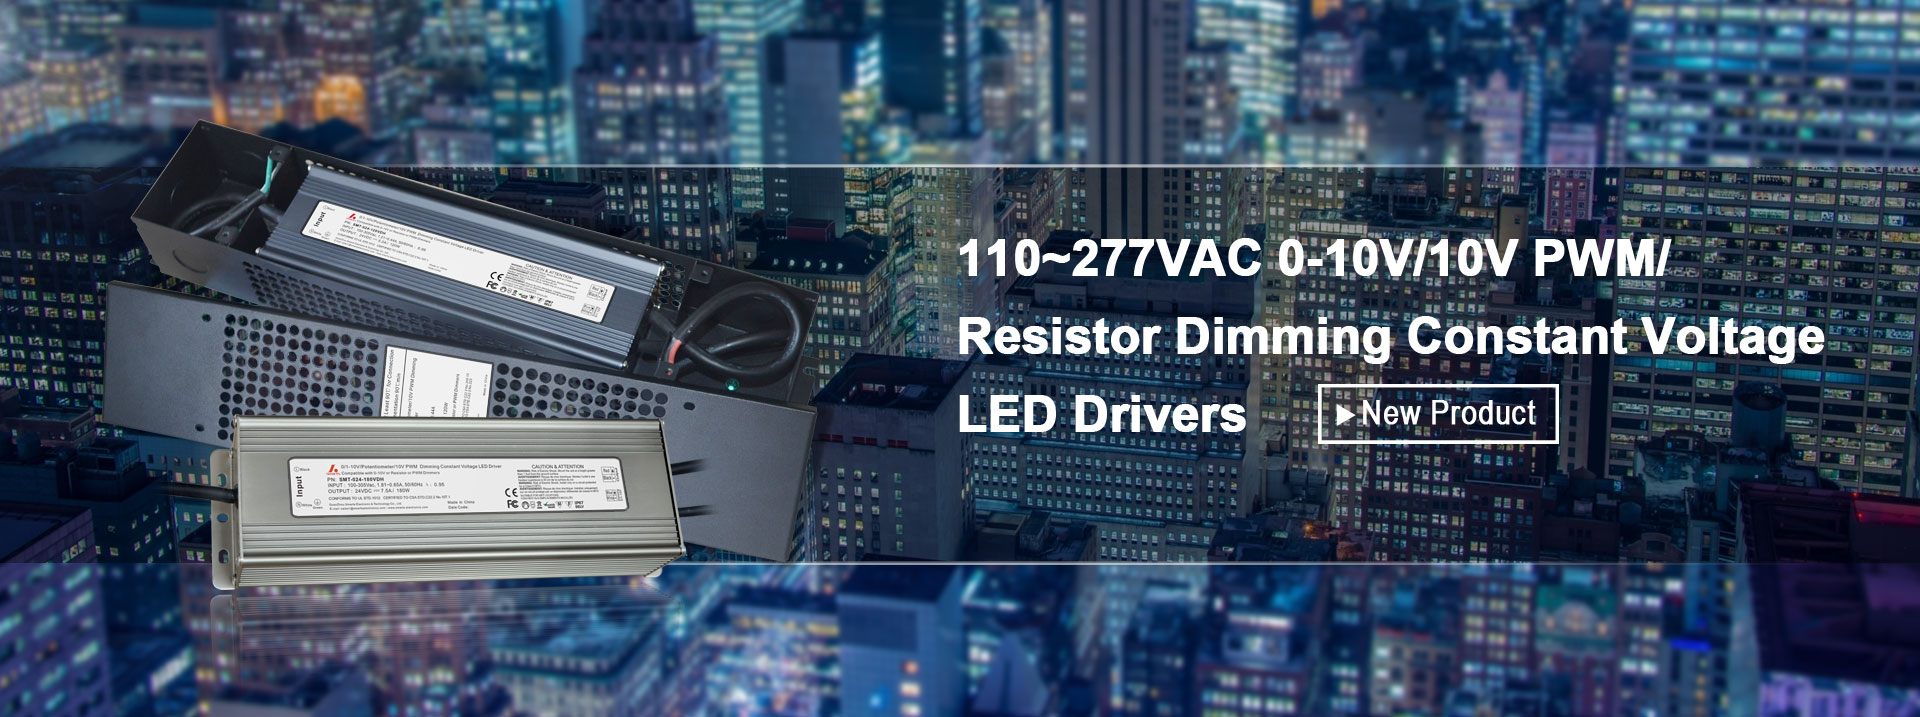 Resistor Dimming Constant Voltage LED Driver